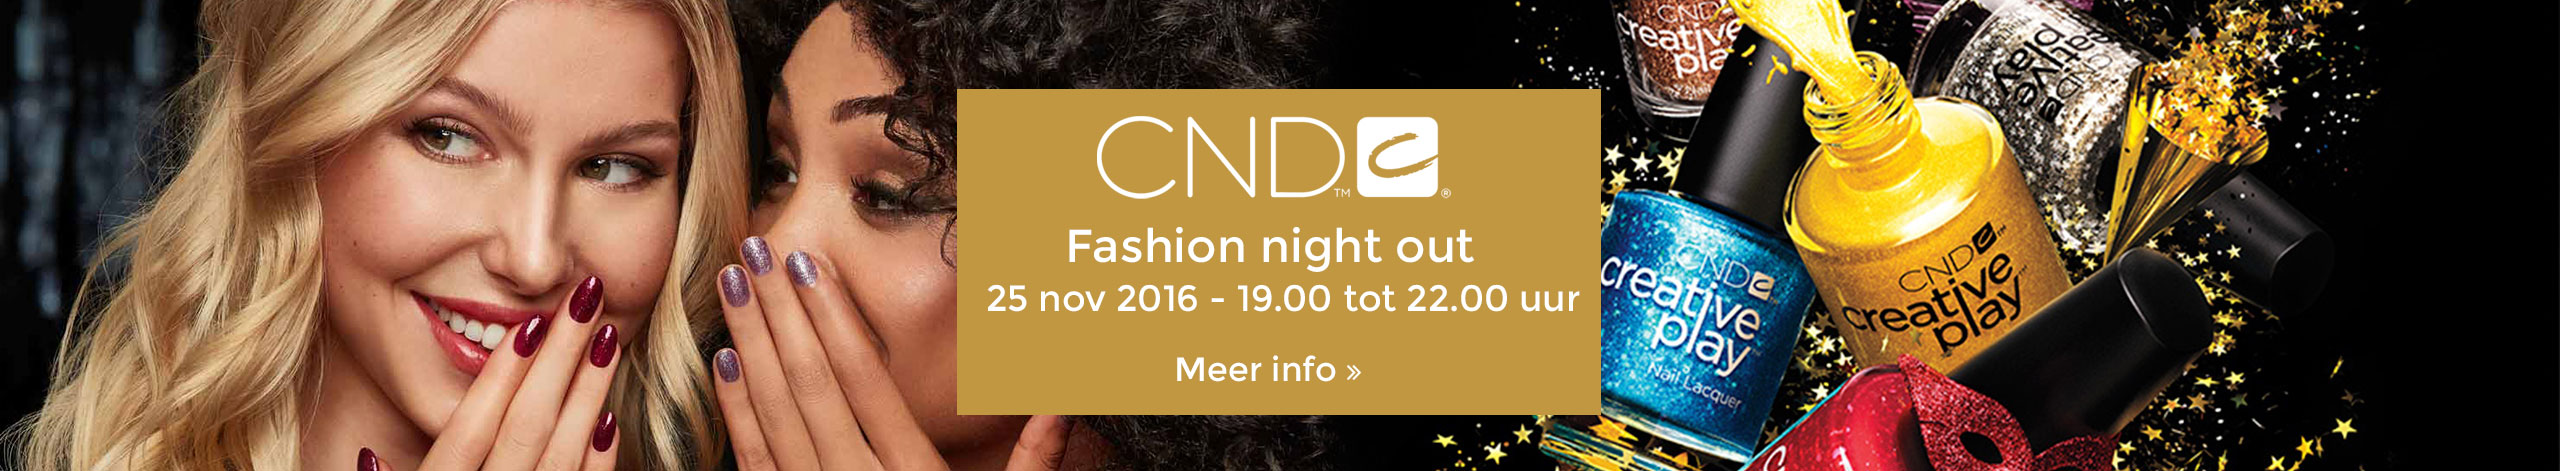 CND-C Fashion night out